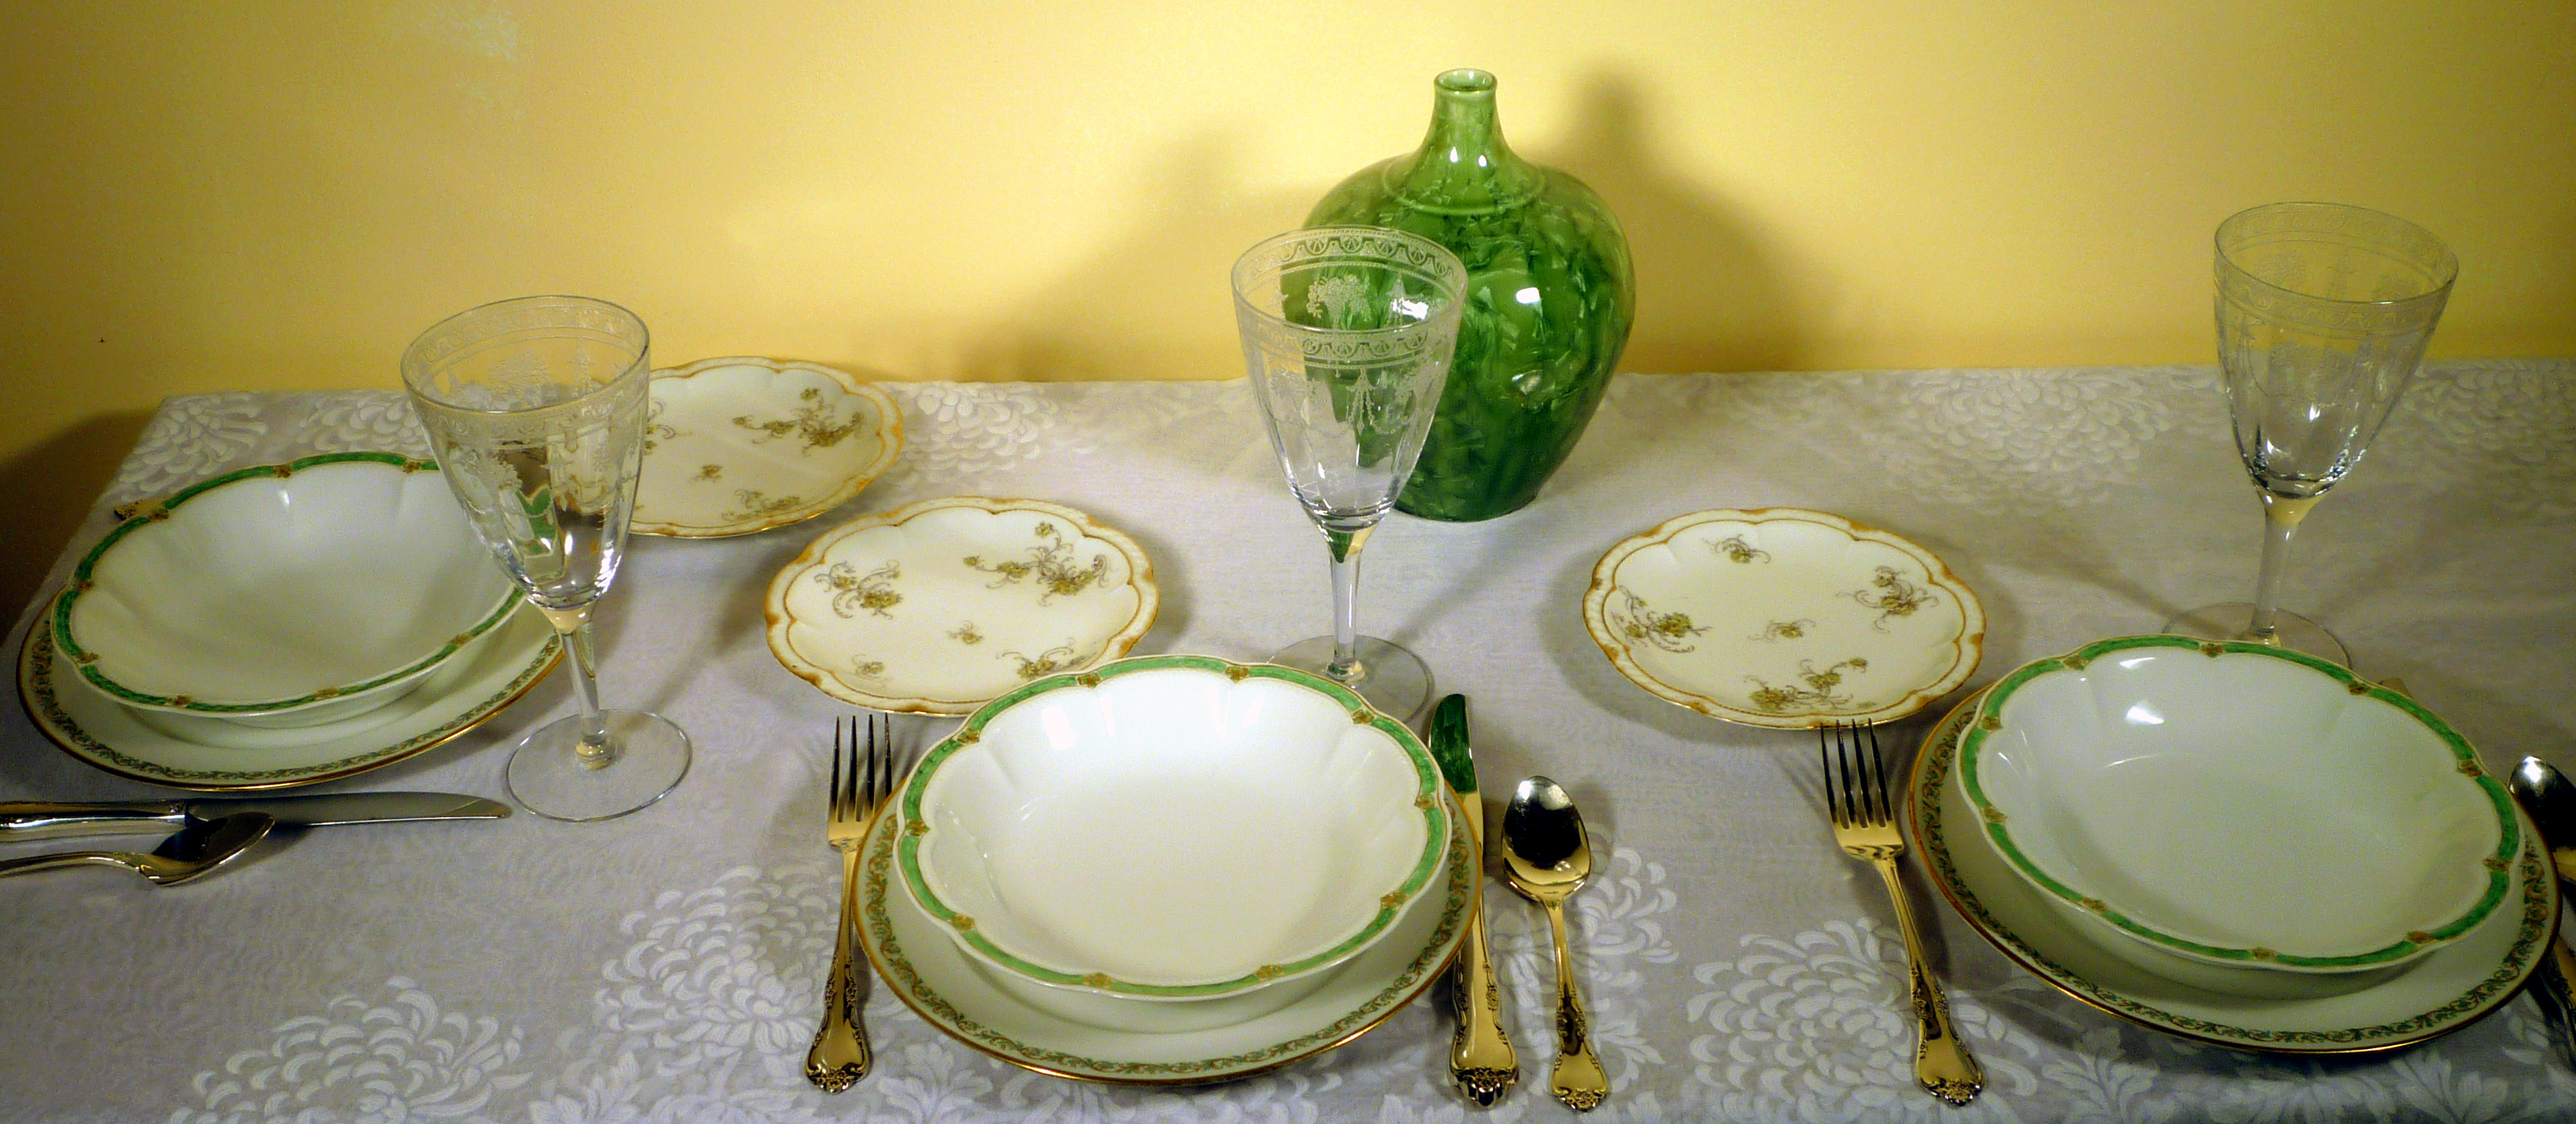 Haviland Limoges Fine French China with Green Designs